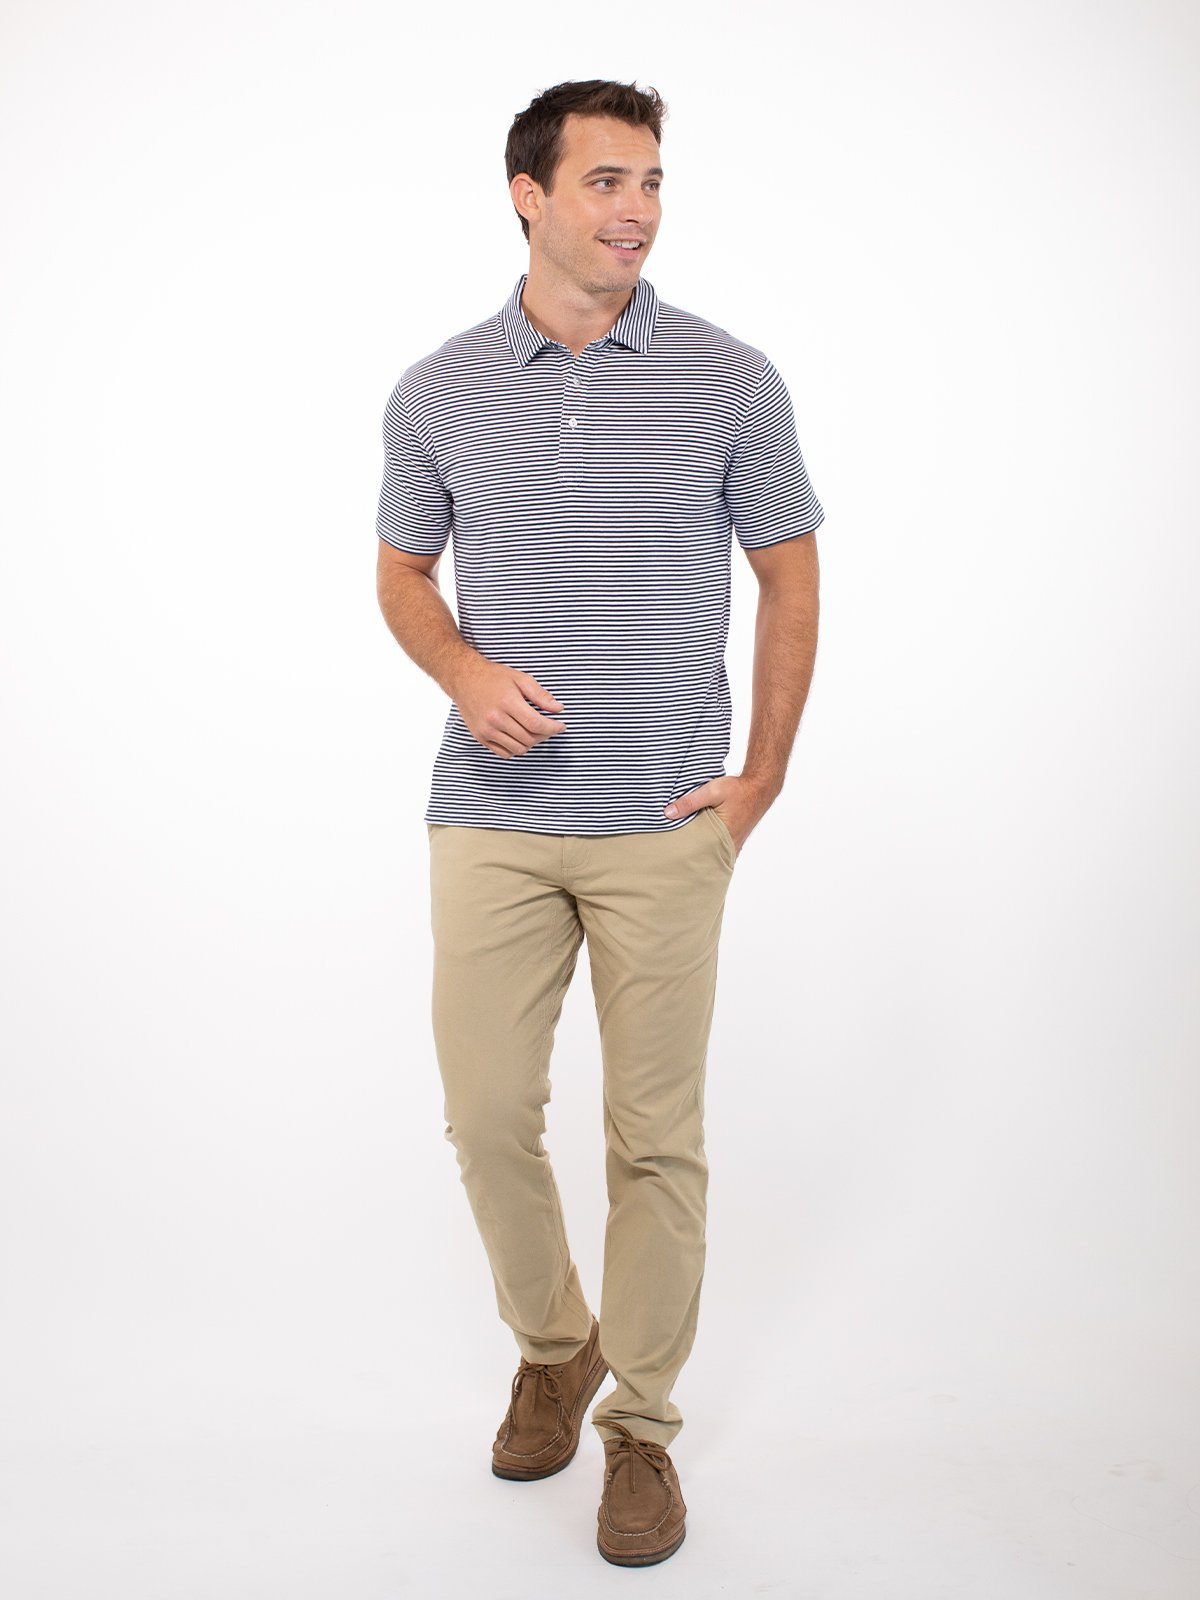 Bamboo Air Stretch Polo - tasc Performance (ClassicNavyWhite)